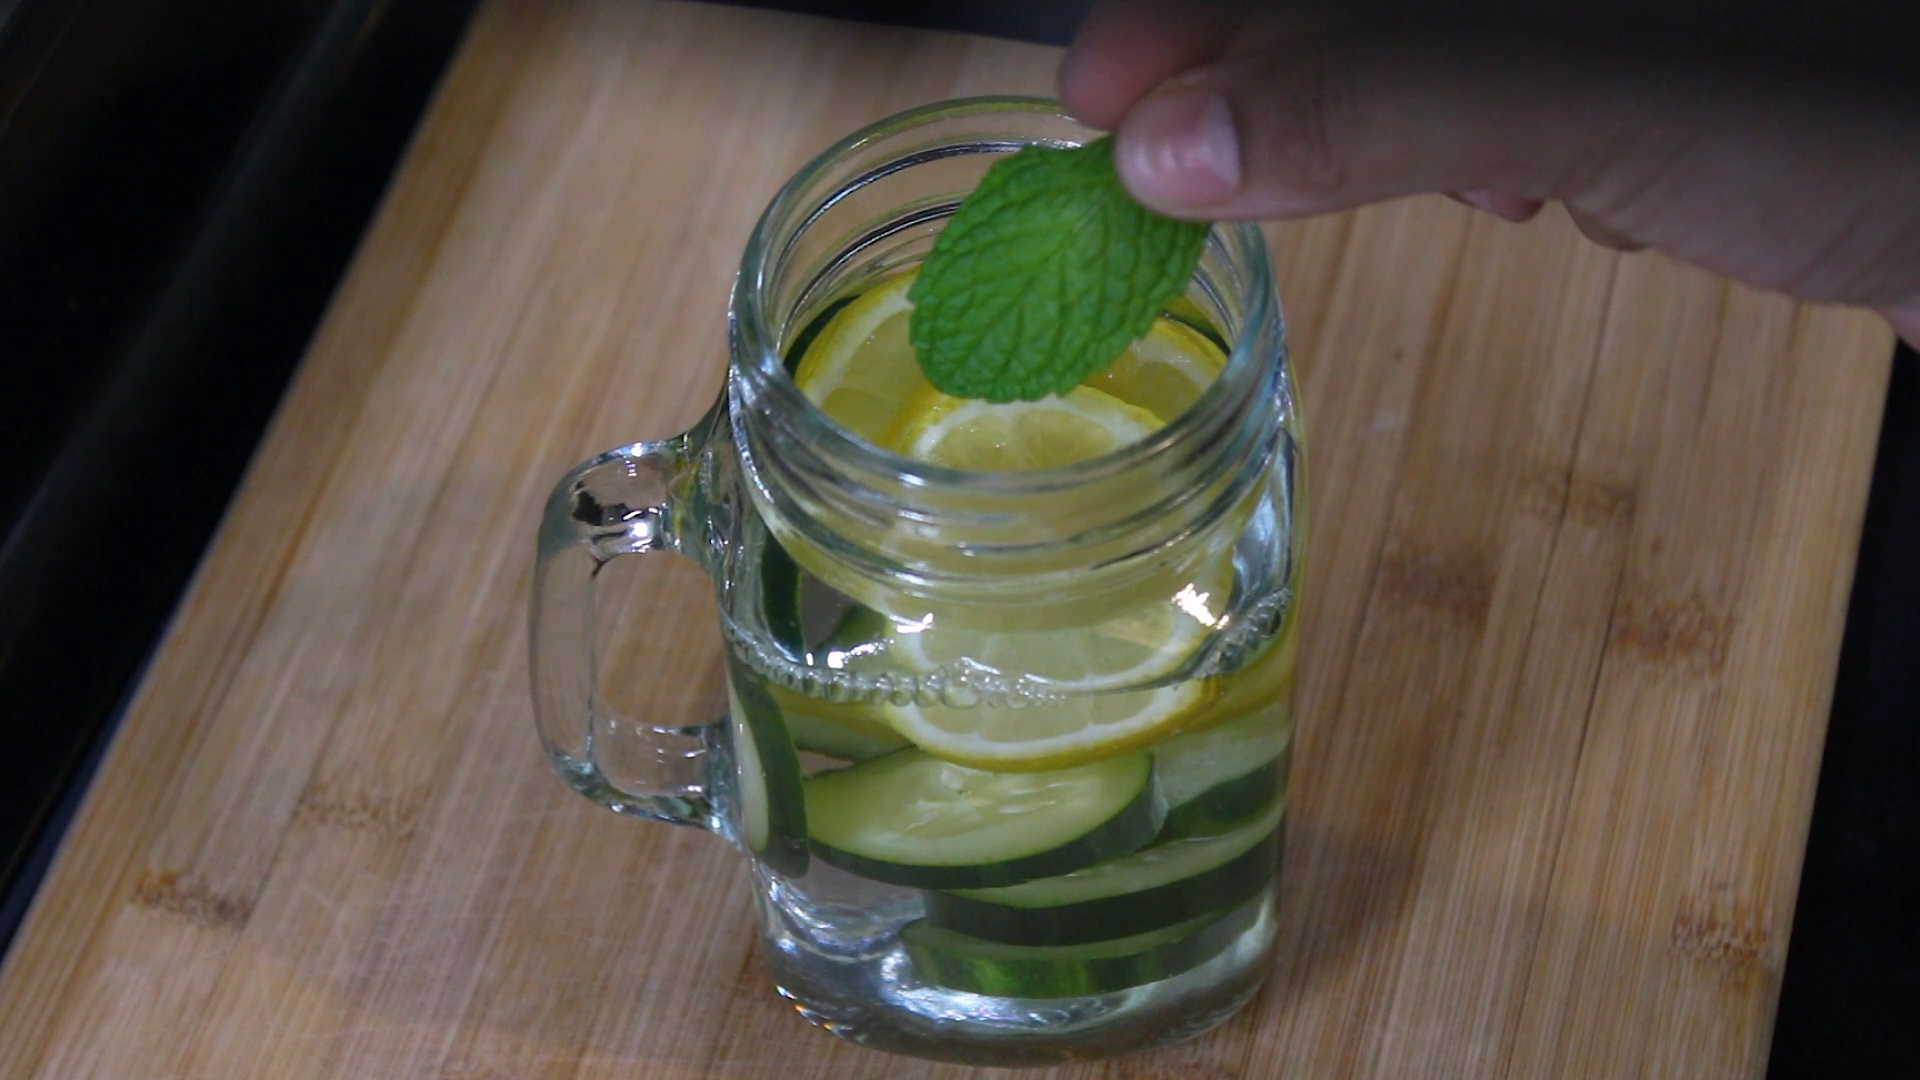 adding mint leaves to the jar